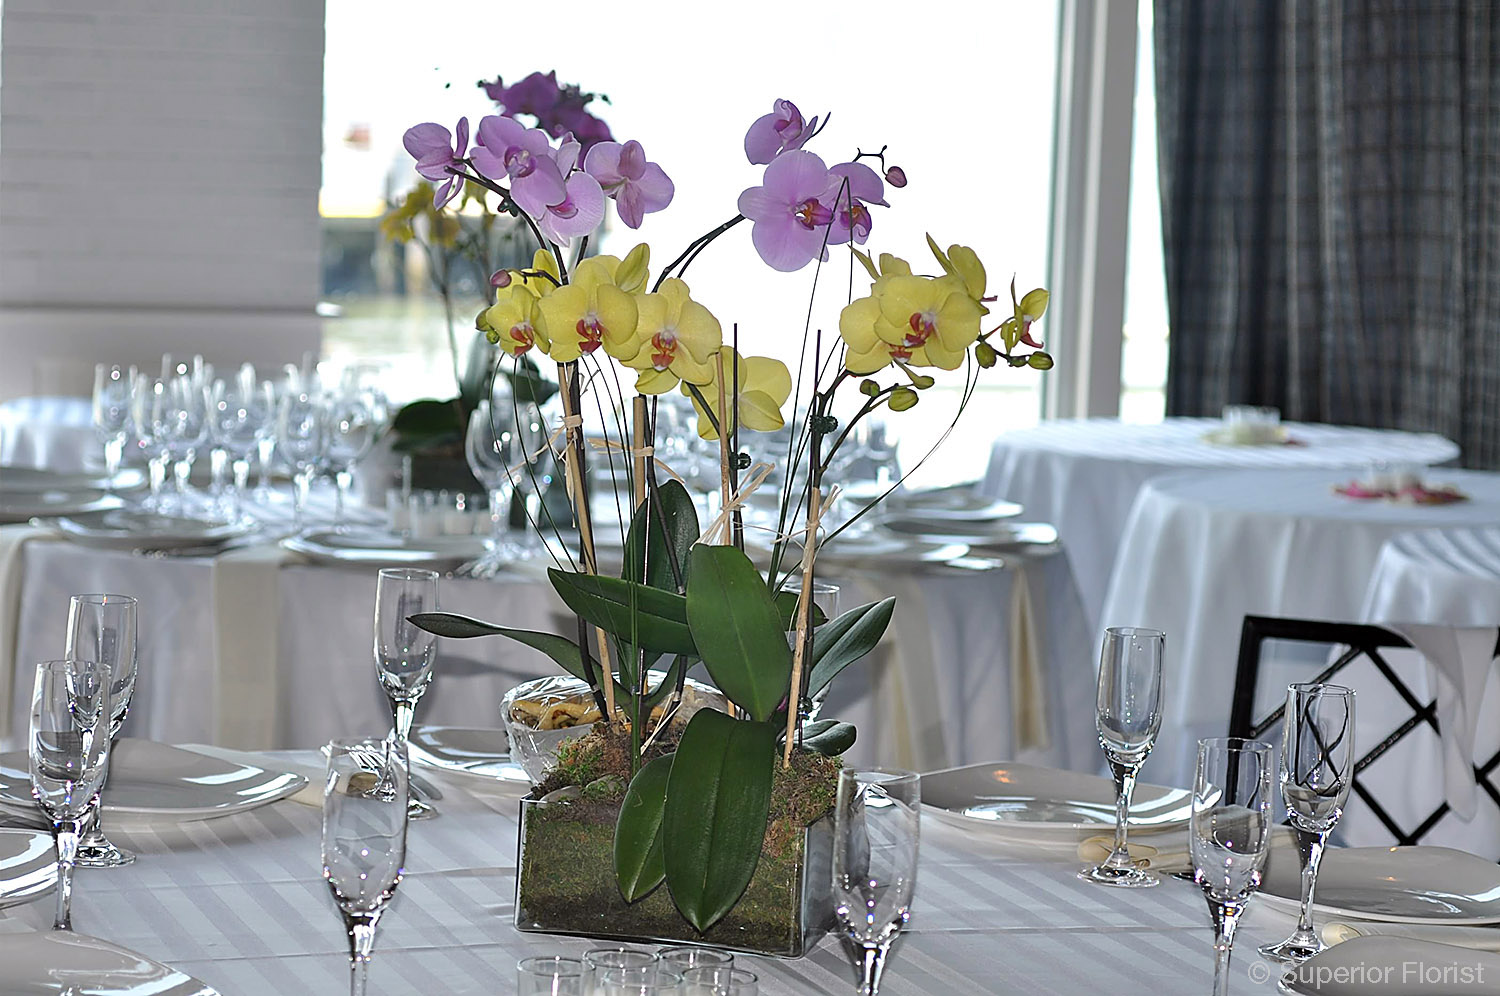 Superior Florist – Centerpieces:  Philinopsis plants in square glass tray.